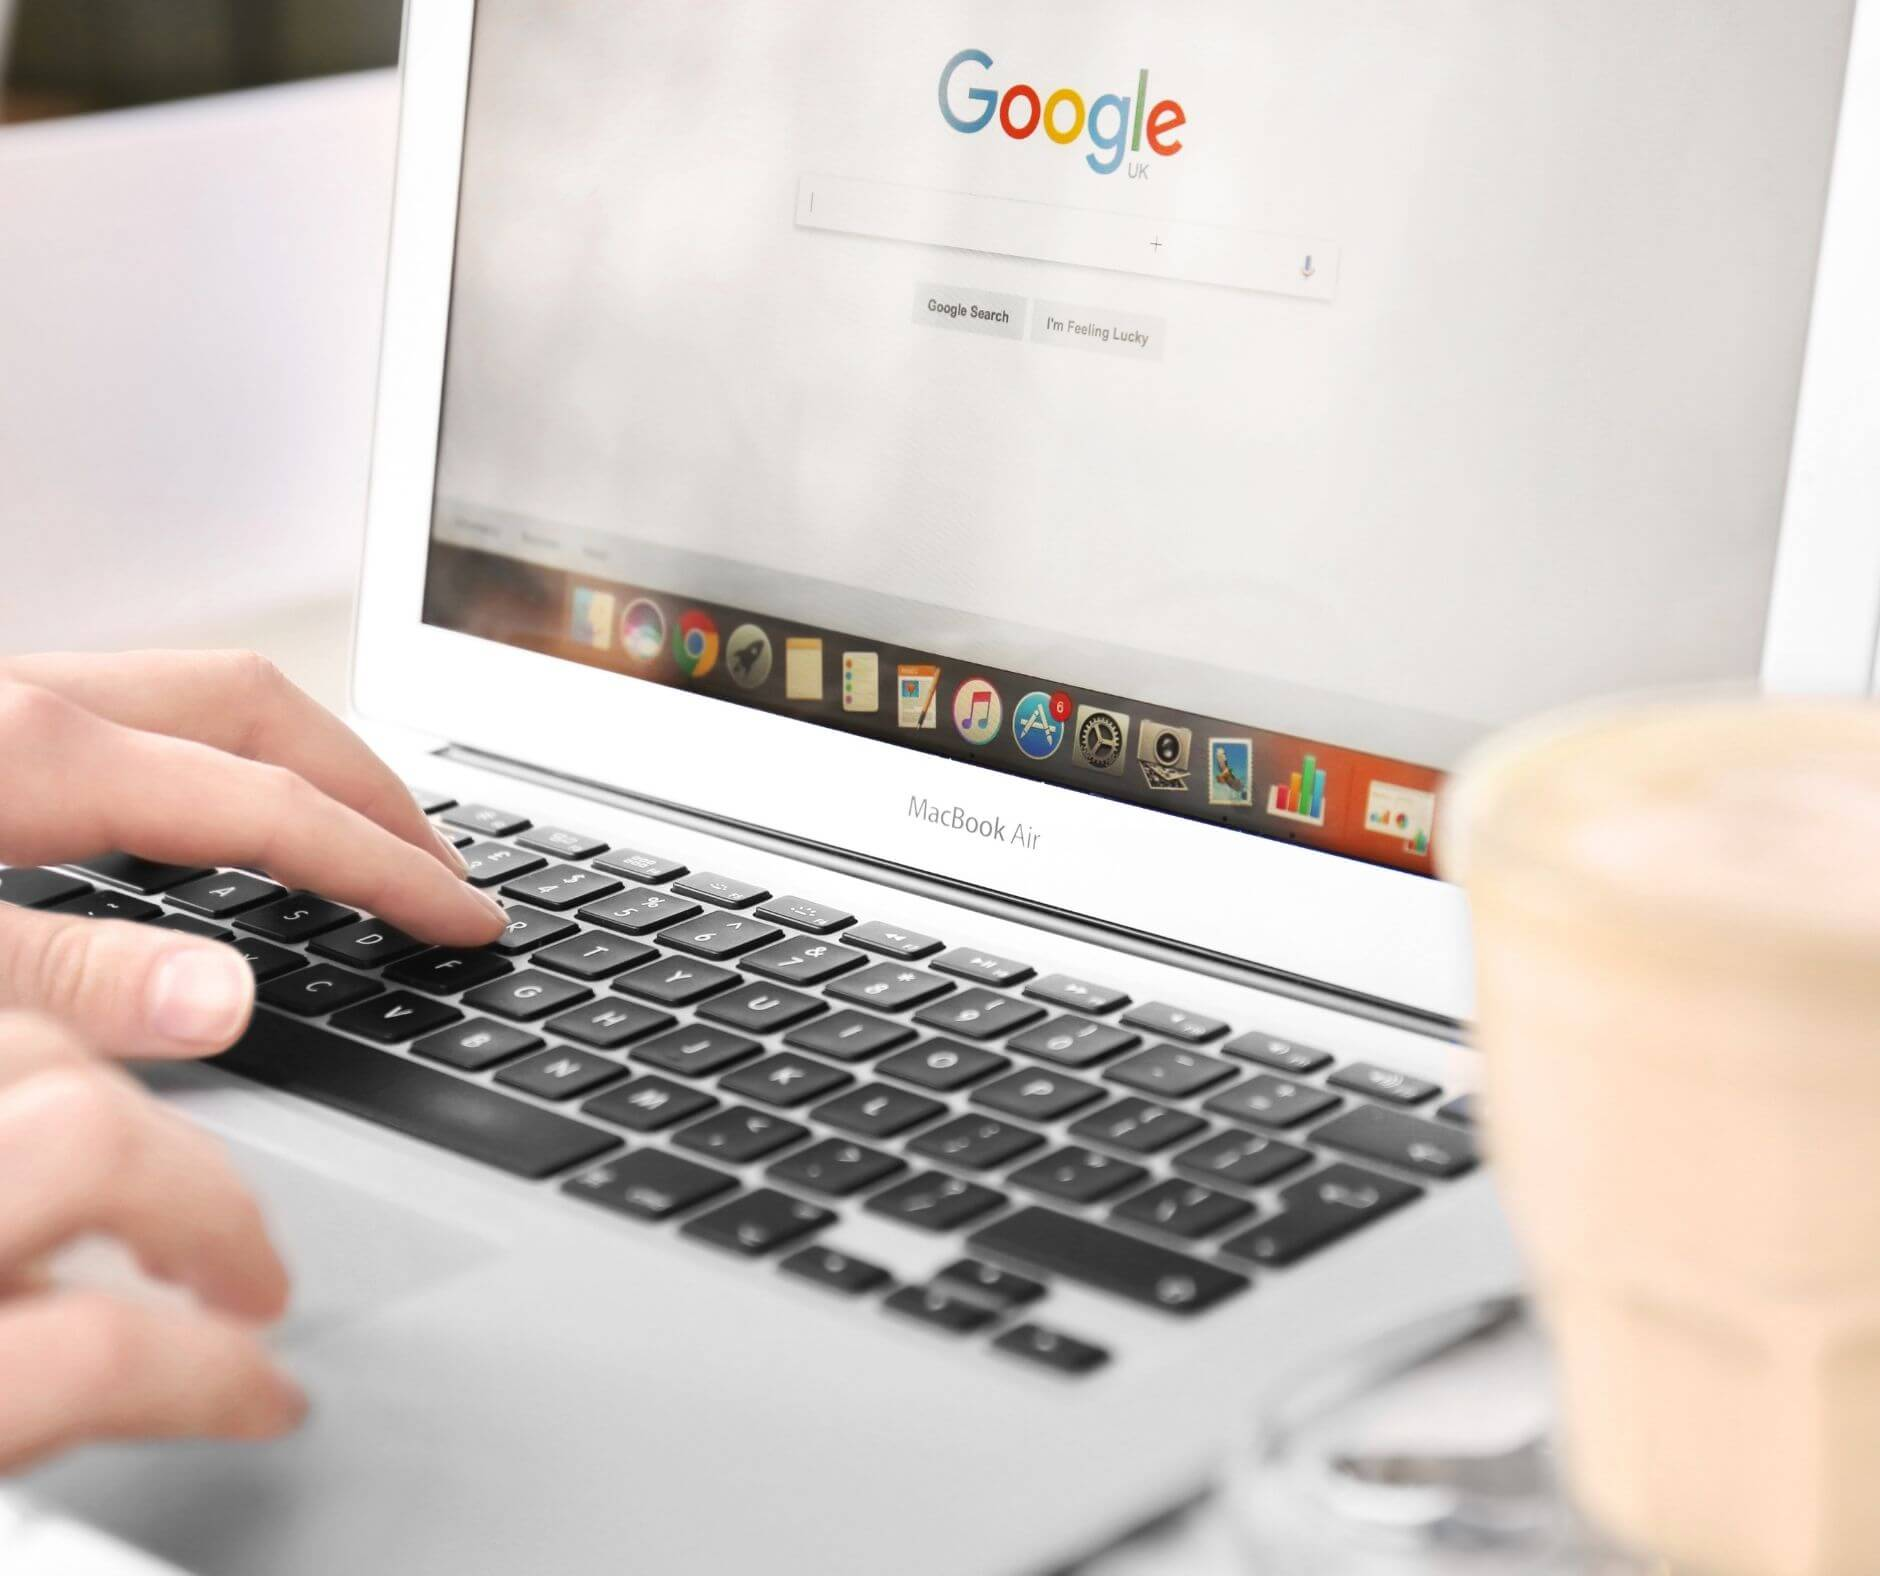 Person typing on laptop with Google showing in browser.